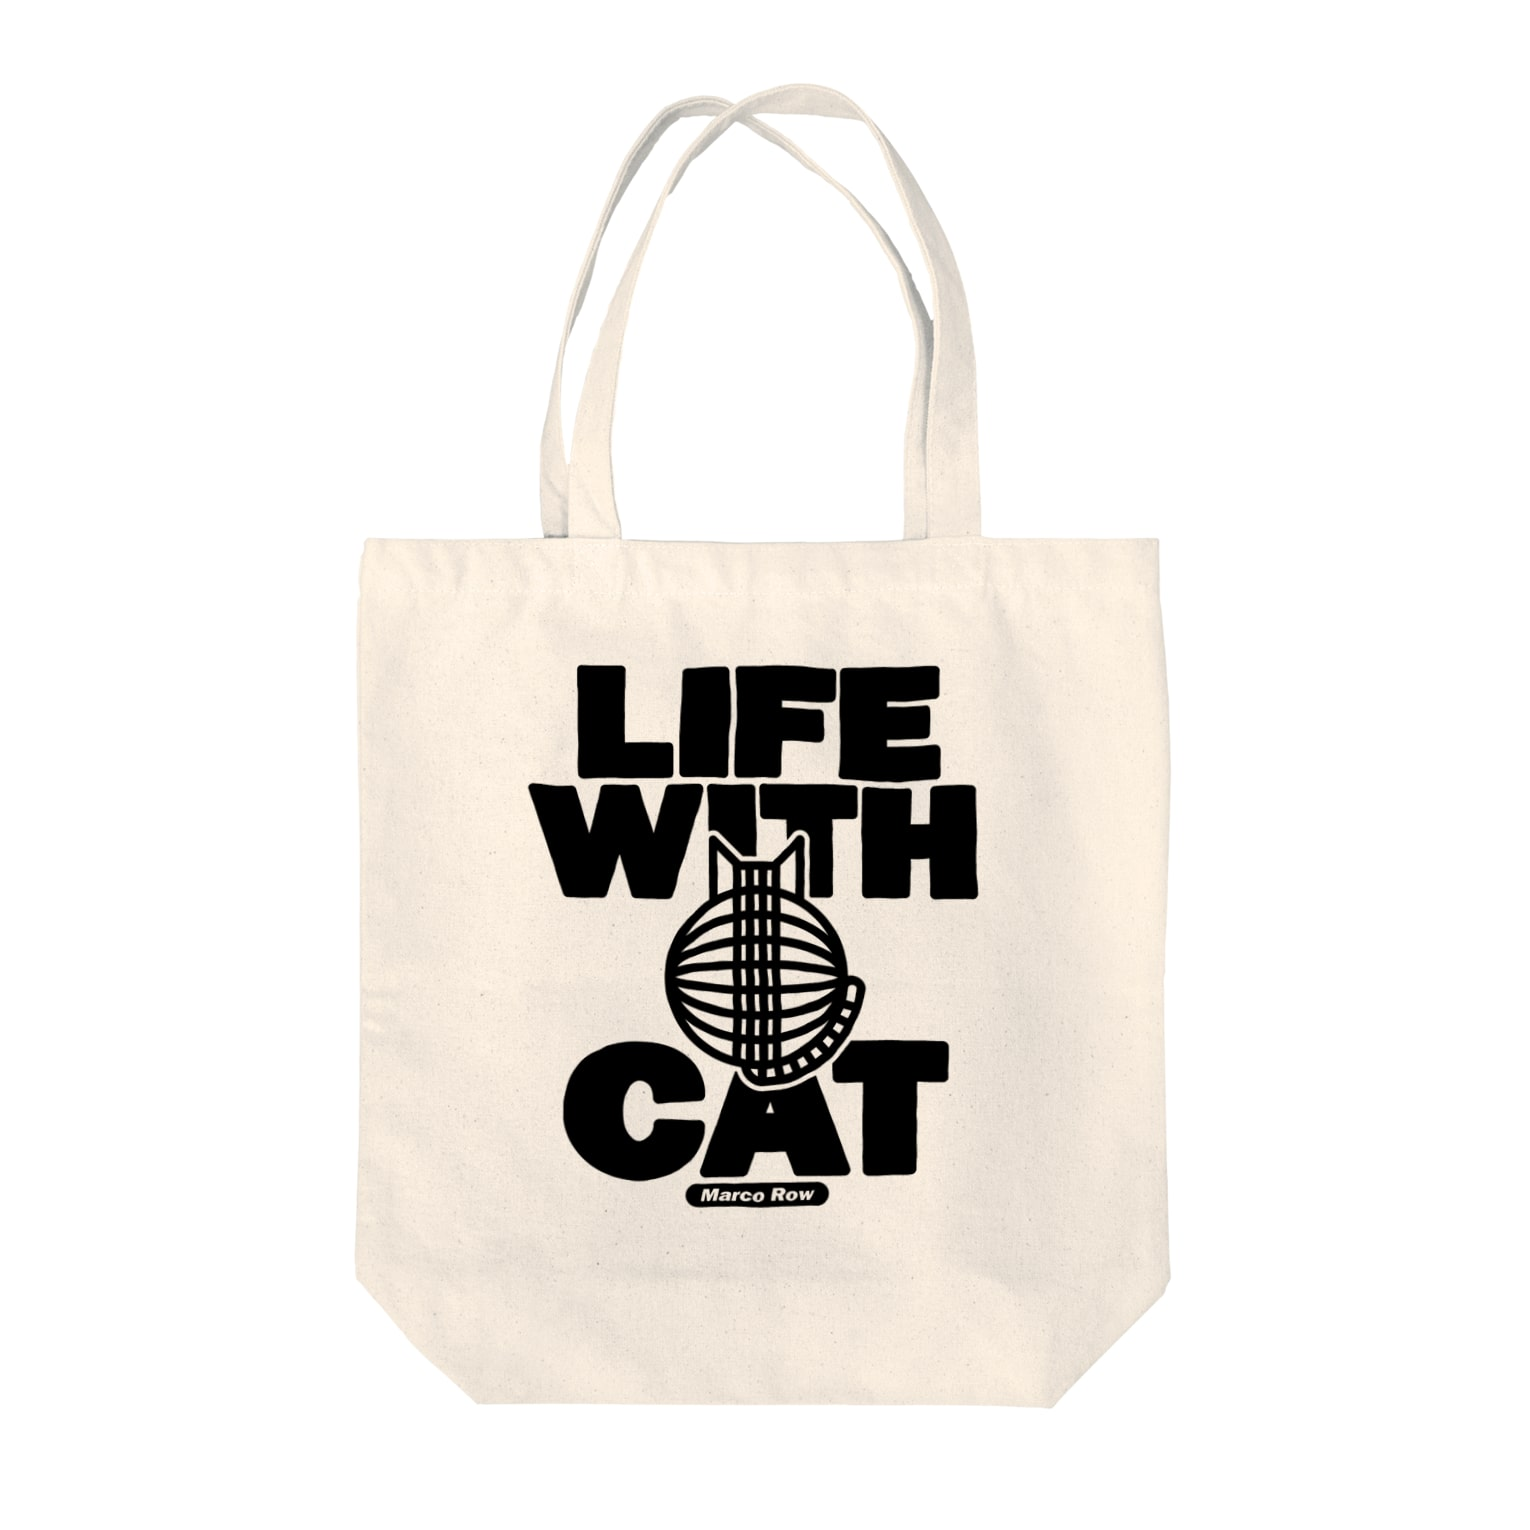 SHOP W SUZURI店のLIFE WITH a CAT トートバッグ Tote bags